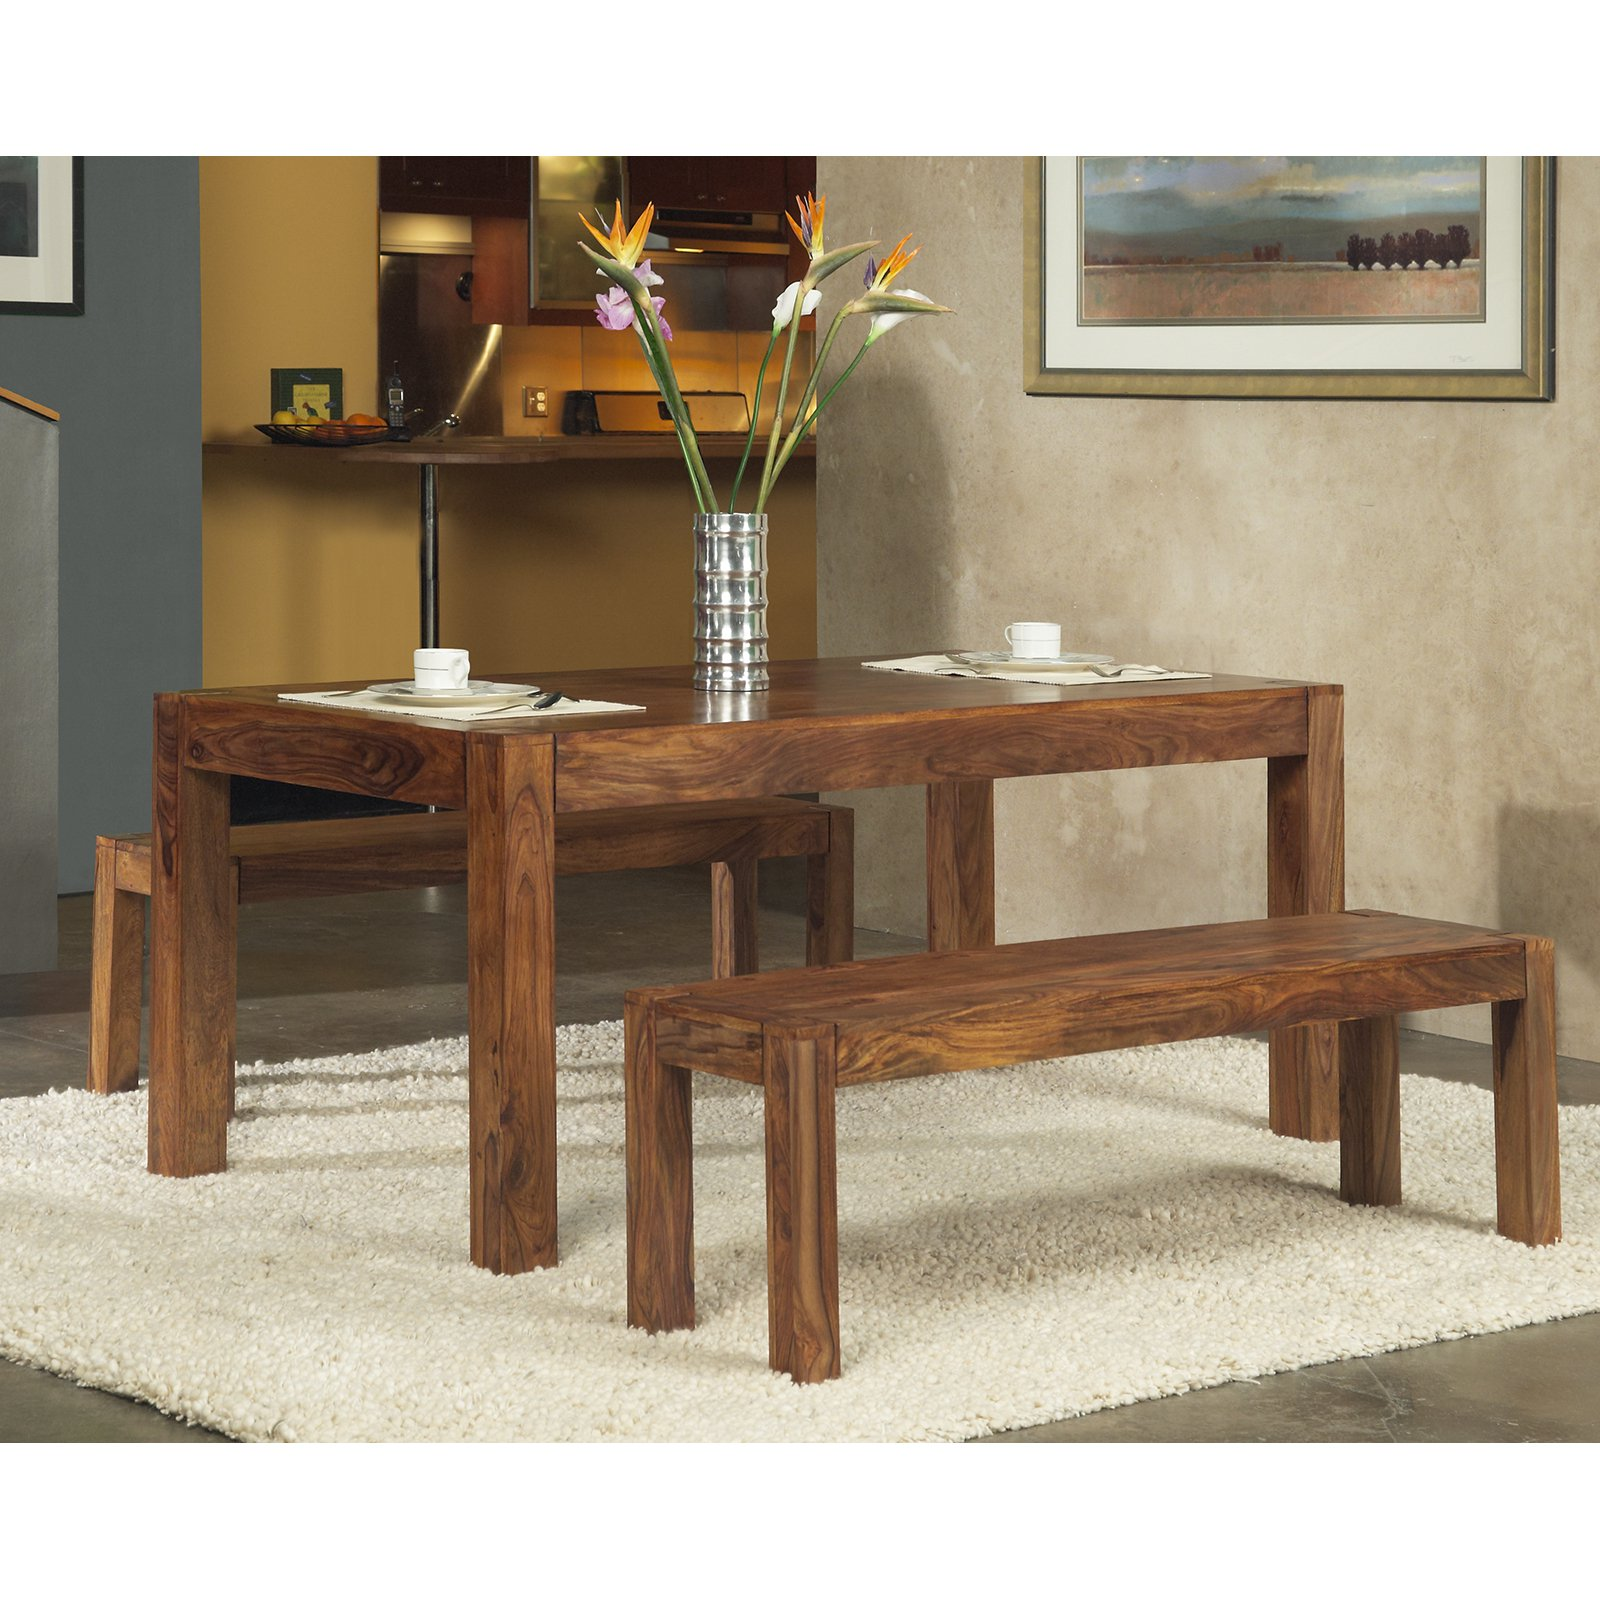 Modus Genus 3 Piece Dining Table Set with 2 Benches